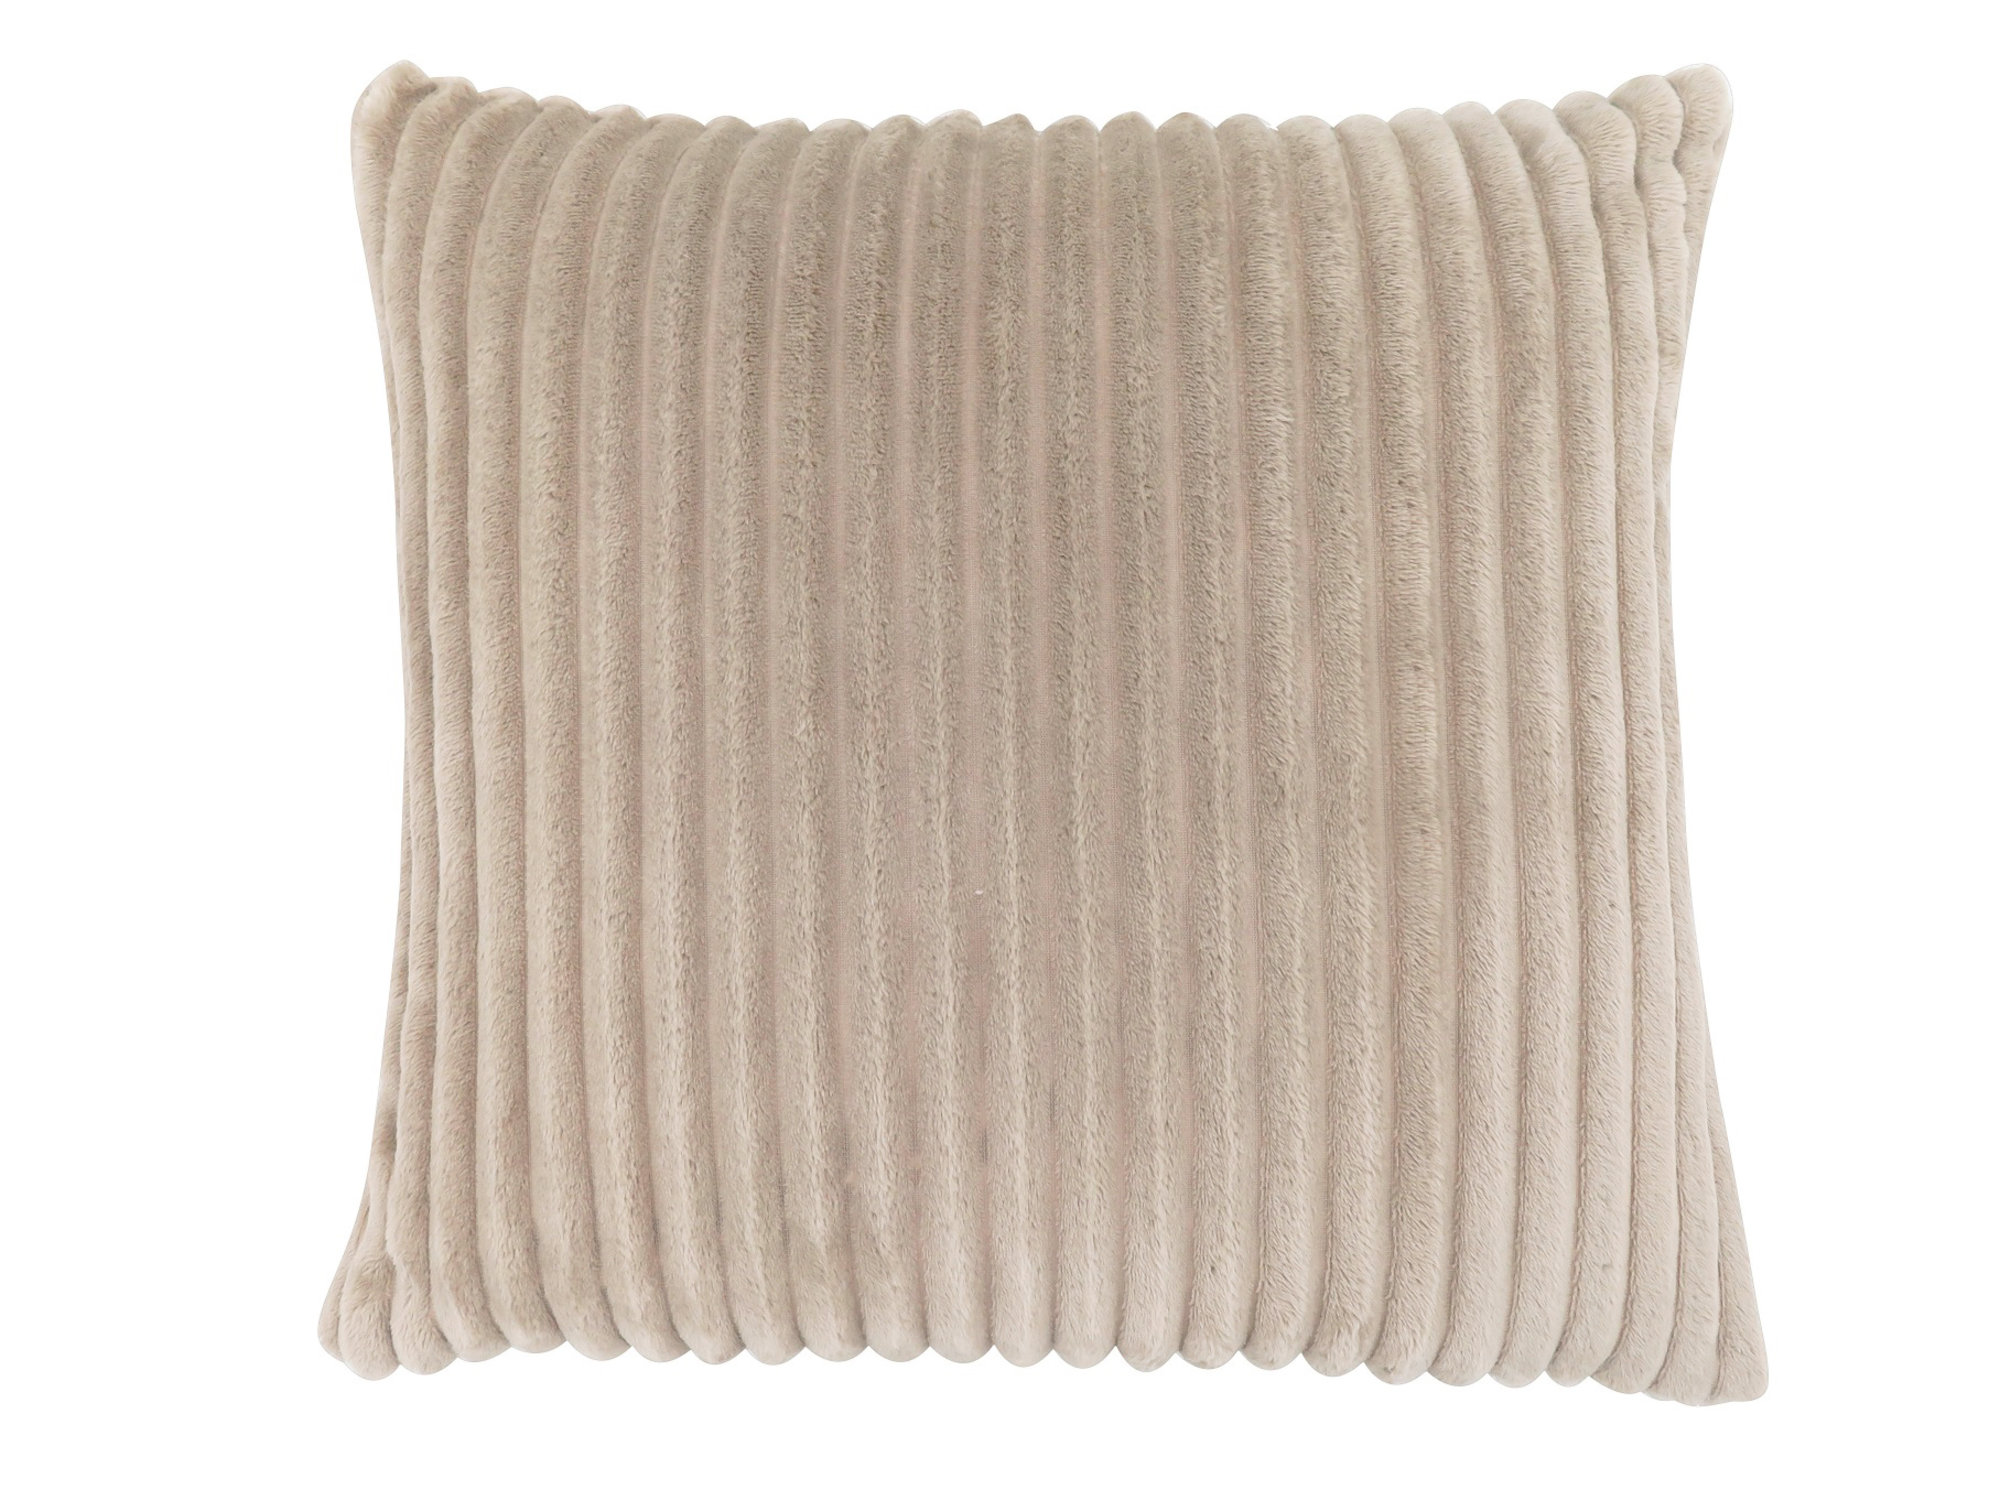 "PILLOW - 18""X 18"" / BEIGE TEXTURED RIB / 1PC"